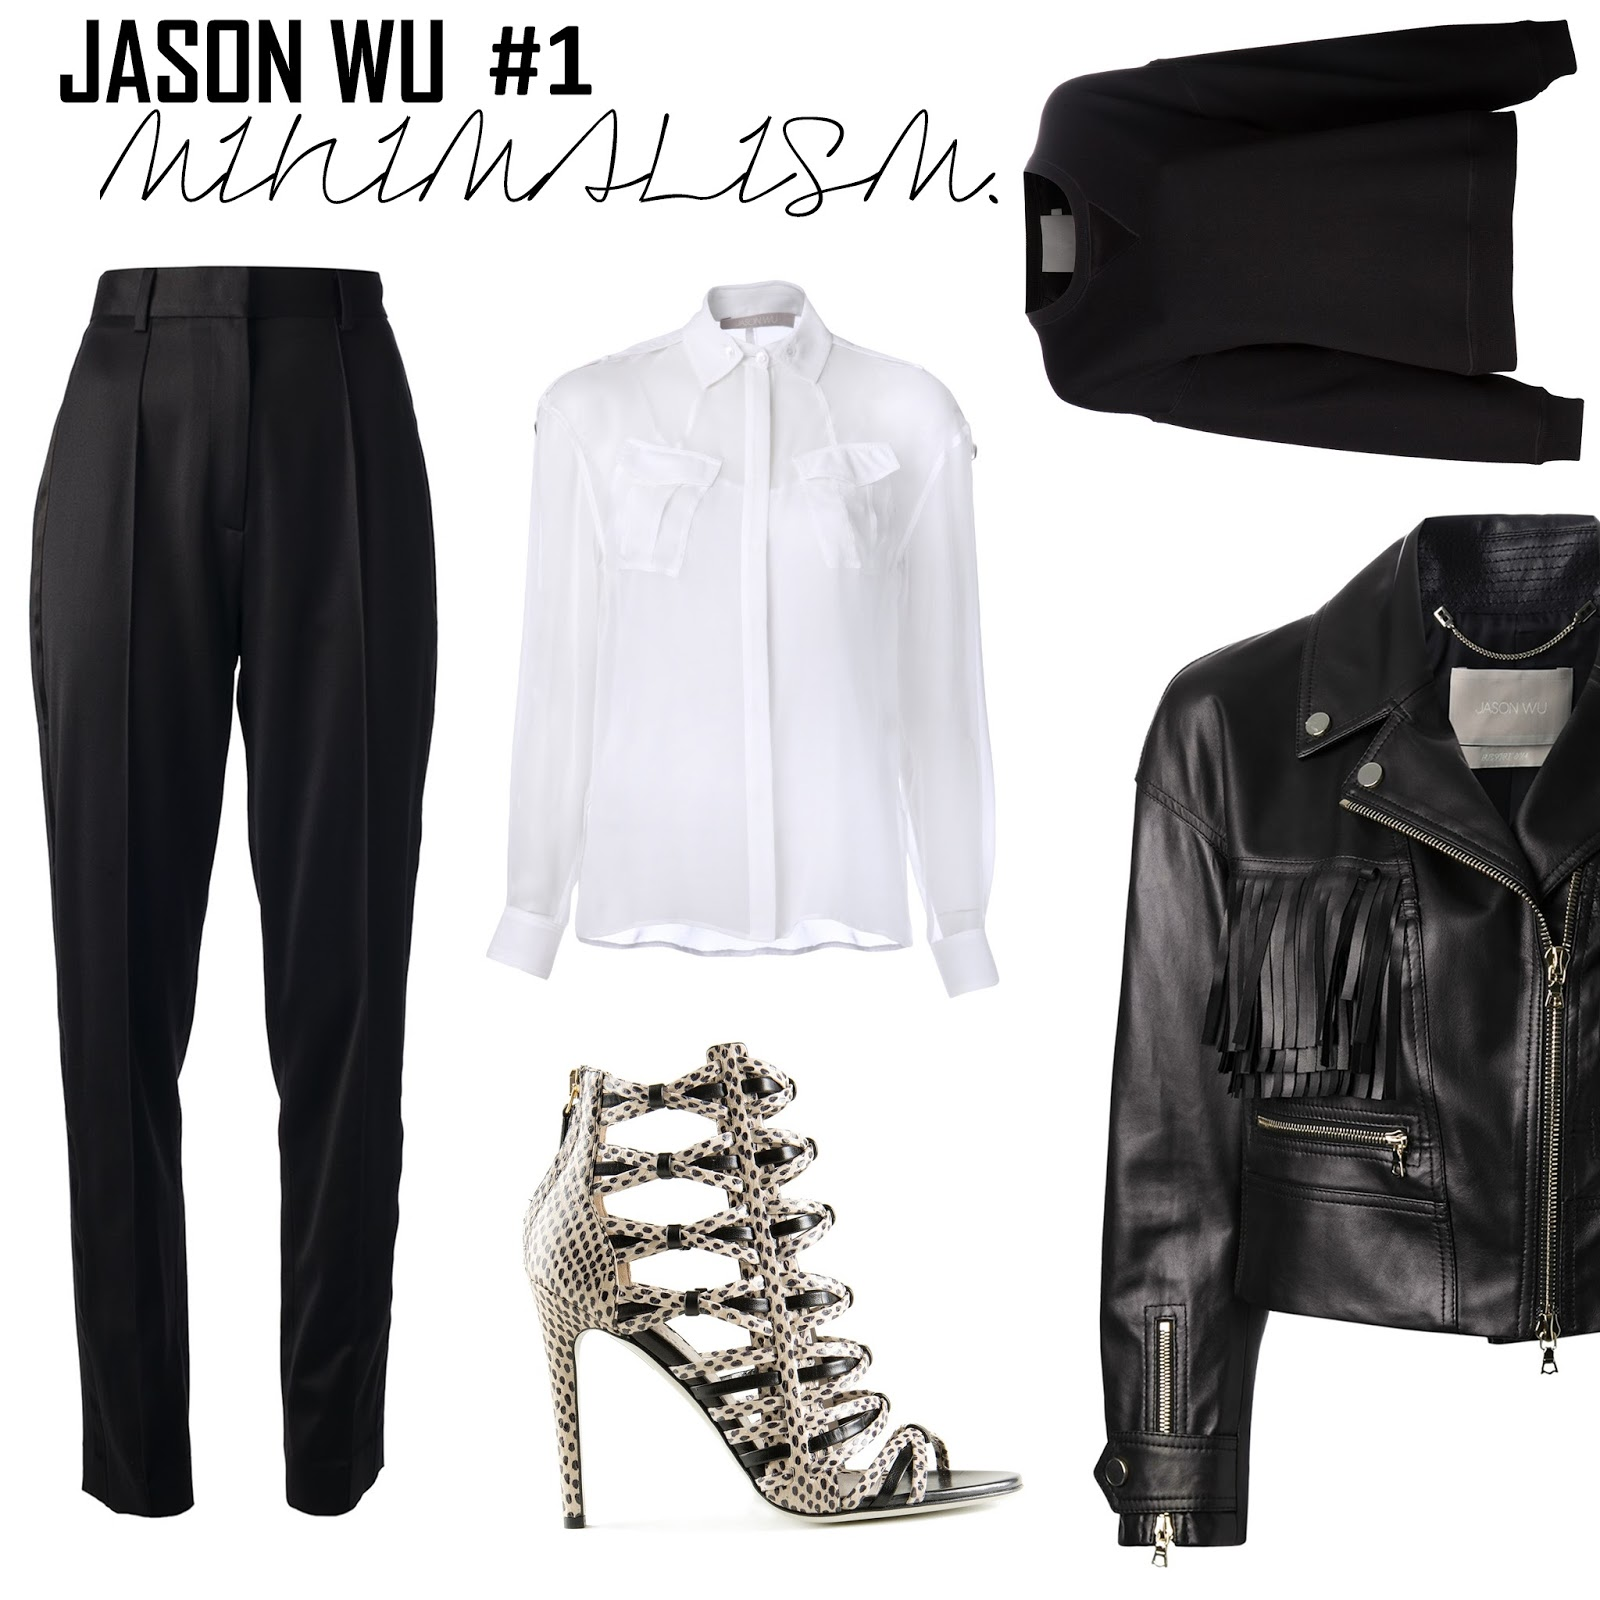 jason wu clothes, outfit, minimalism, styling, blogger